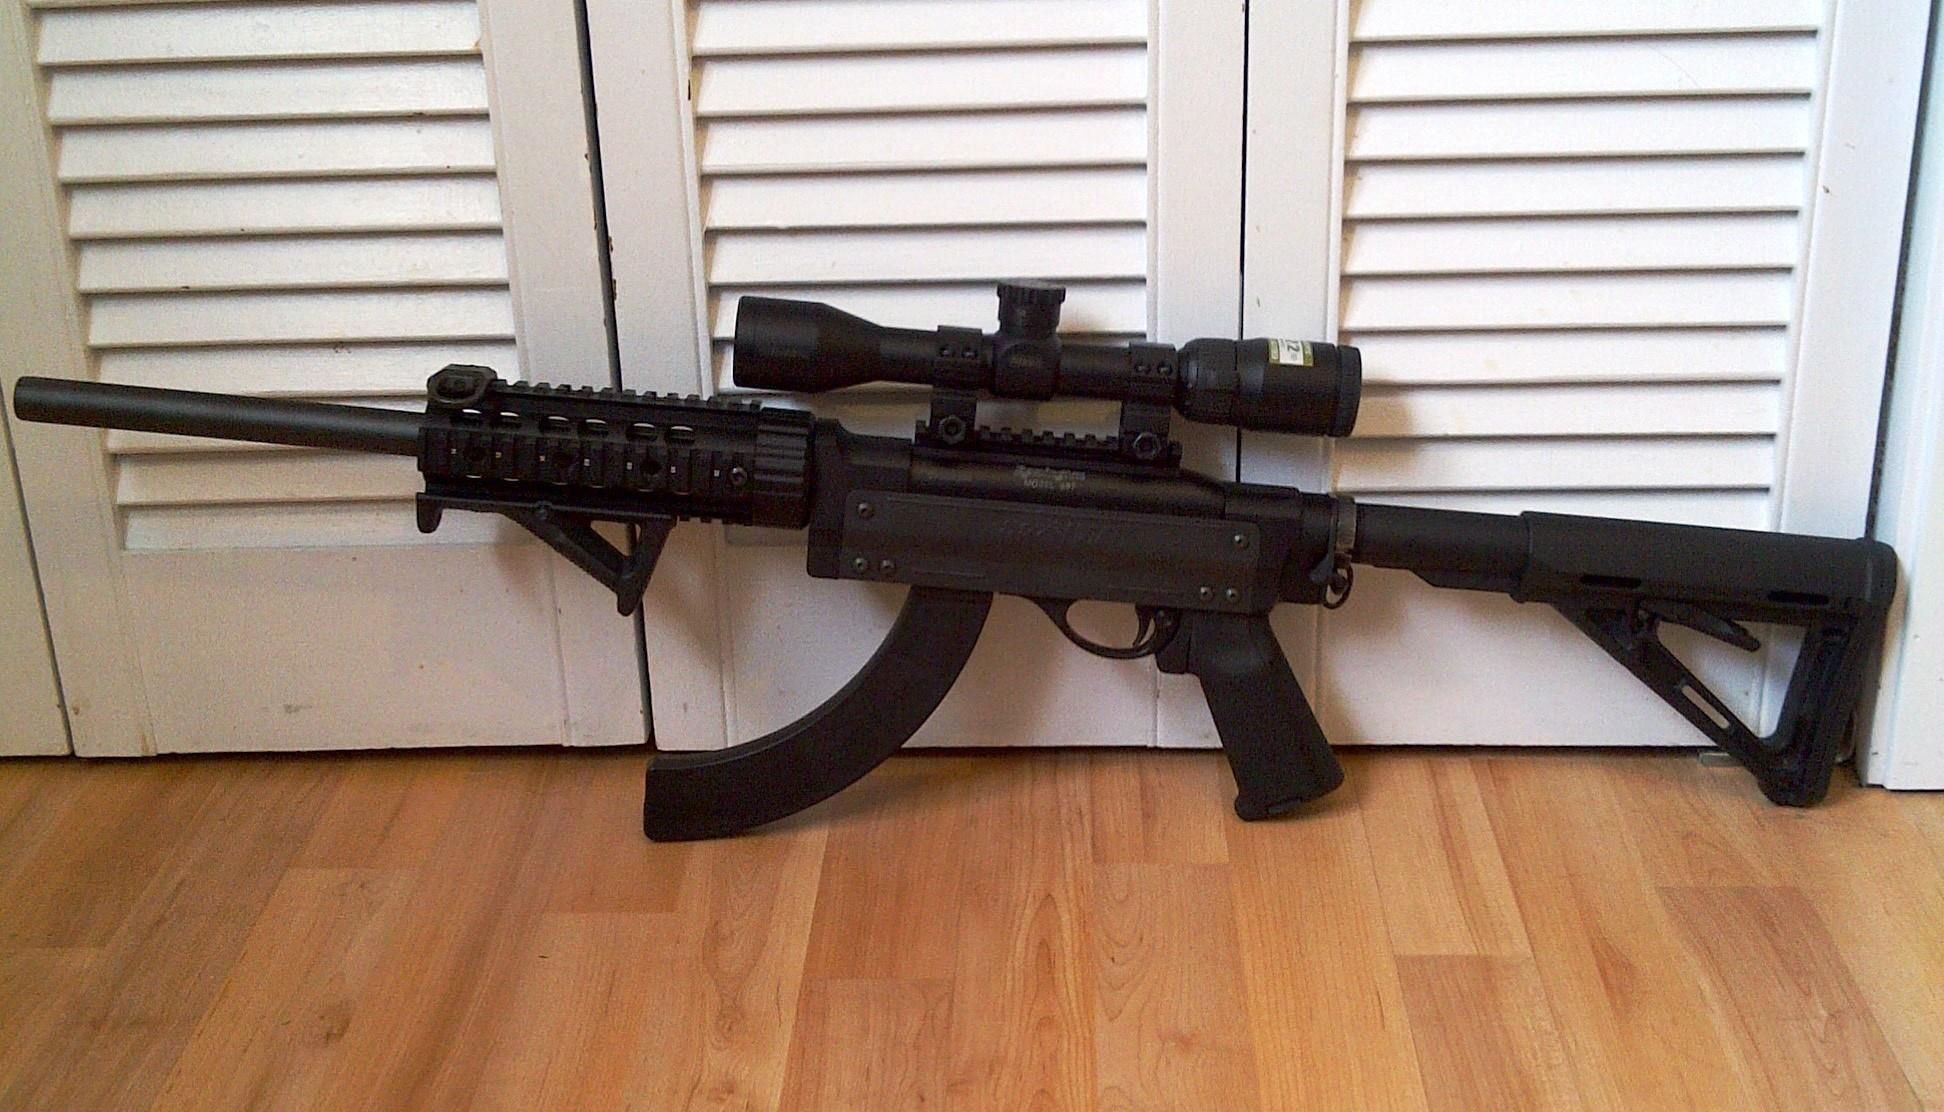 Remington 597 VTR a magpul stock, grip and fore grip  front